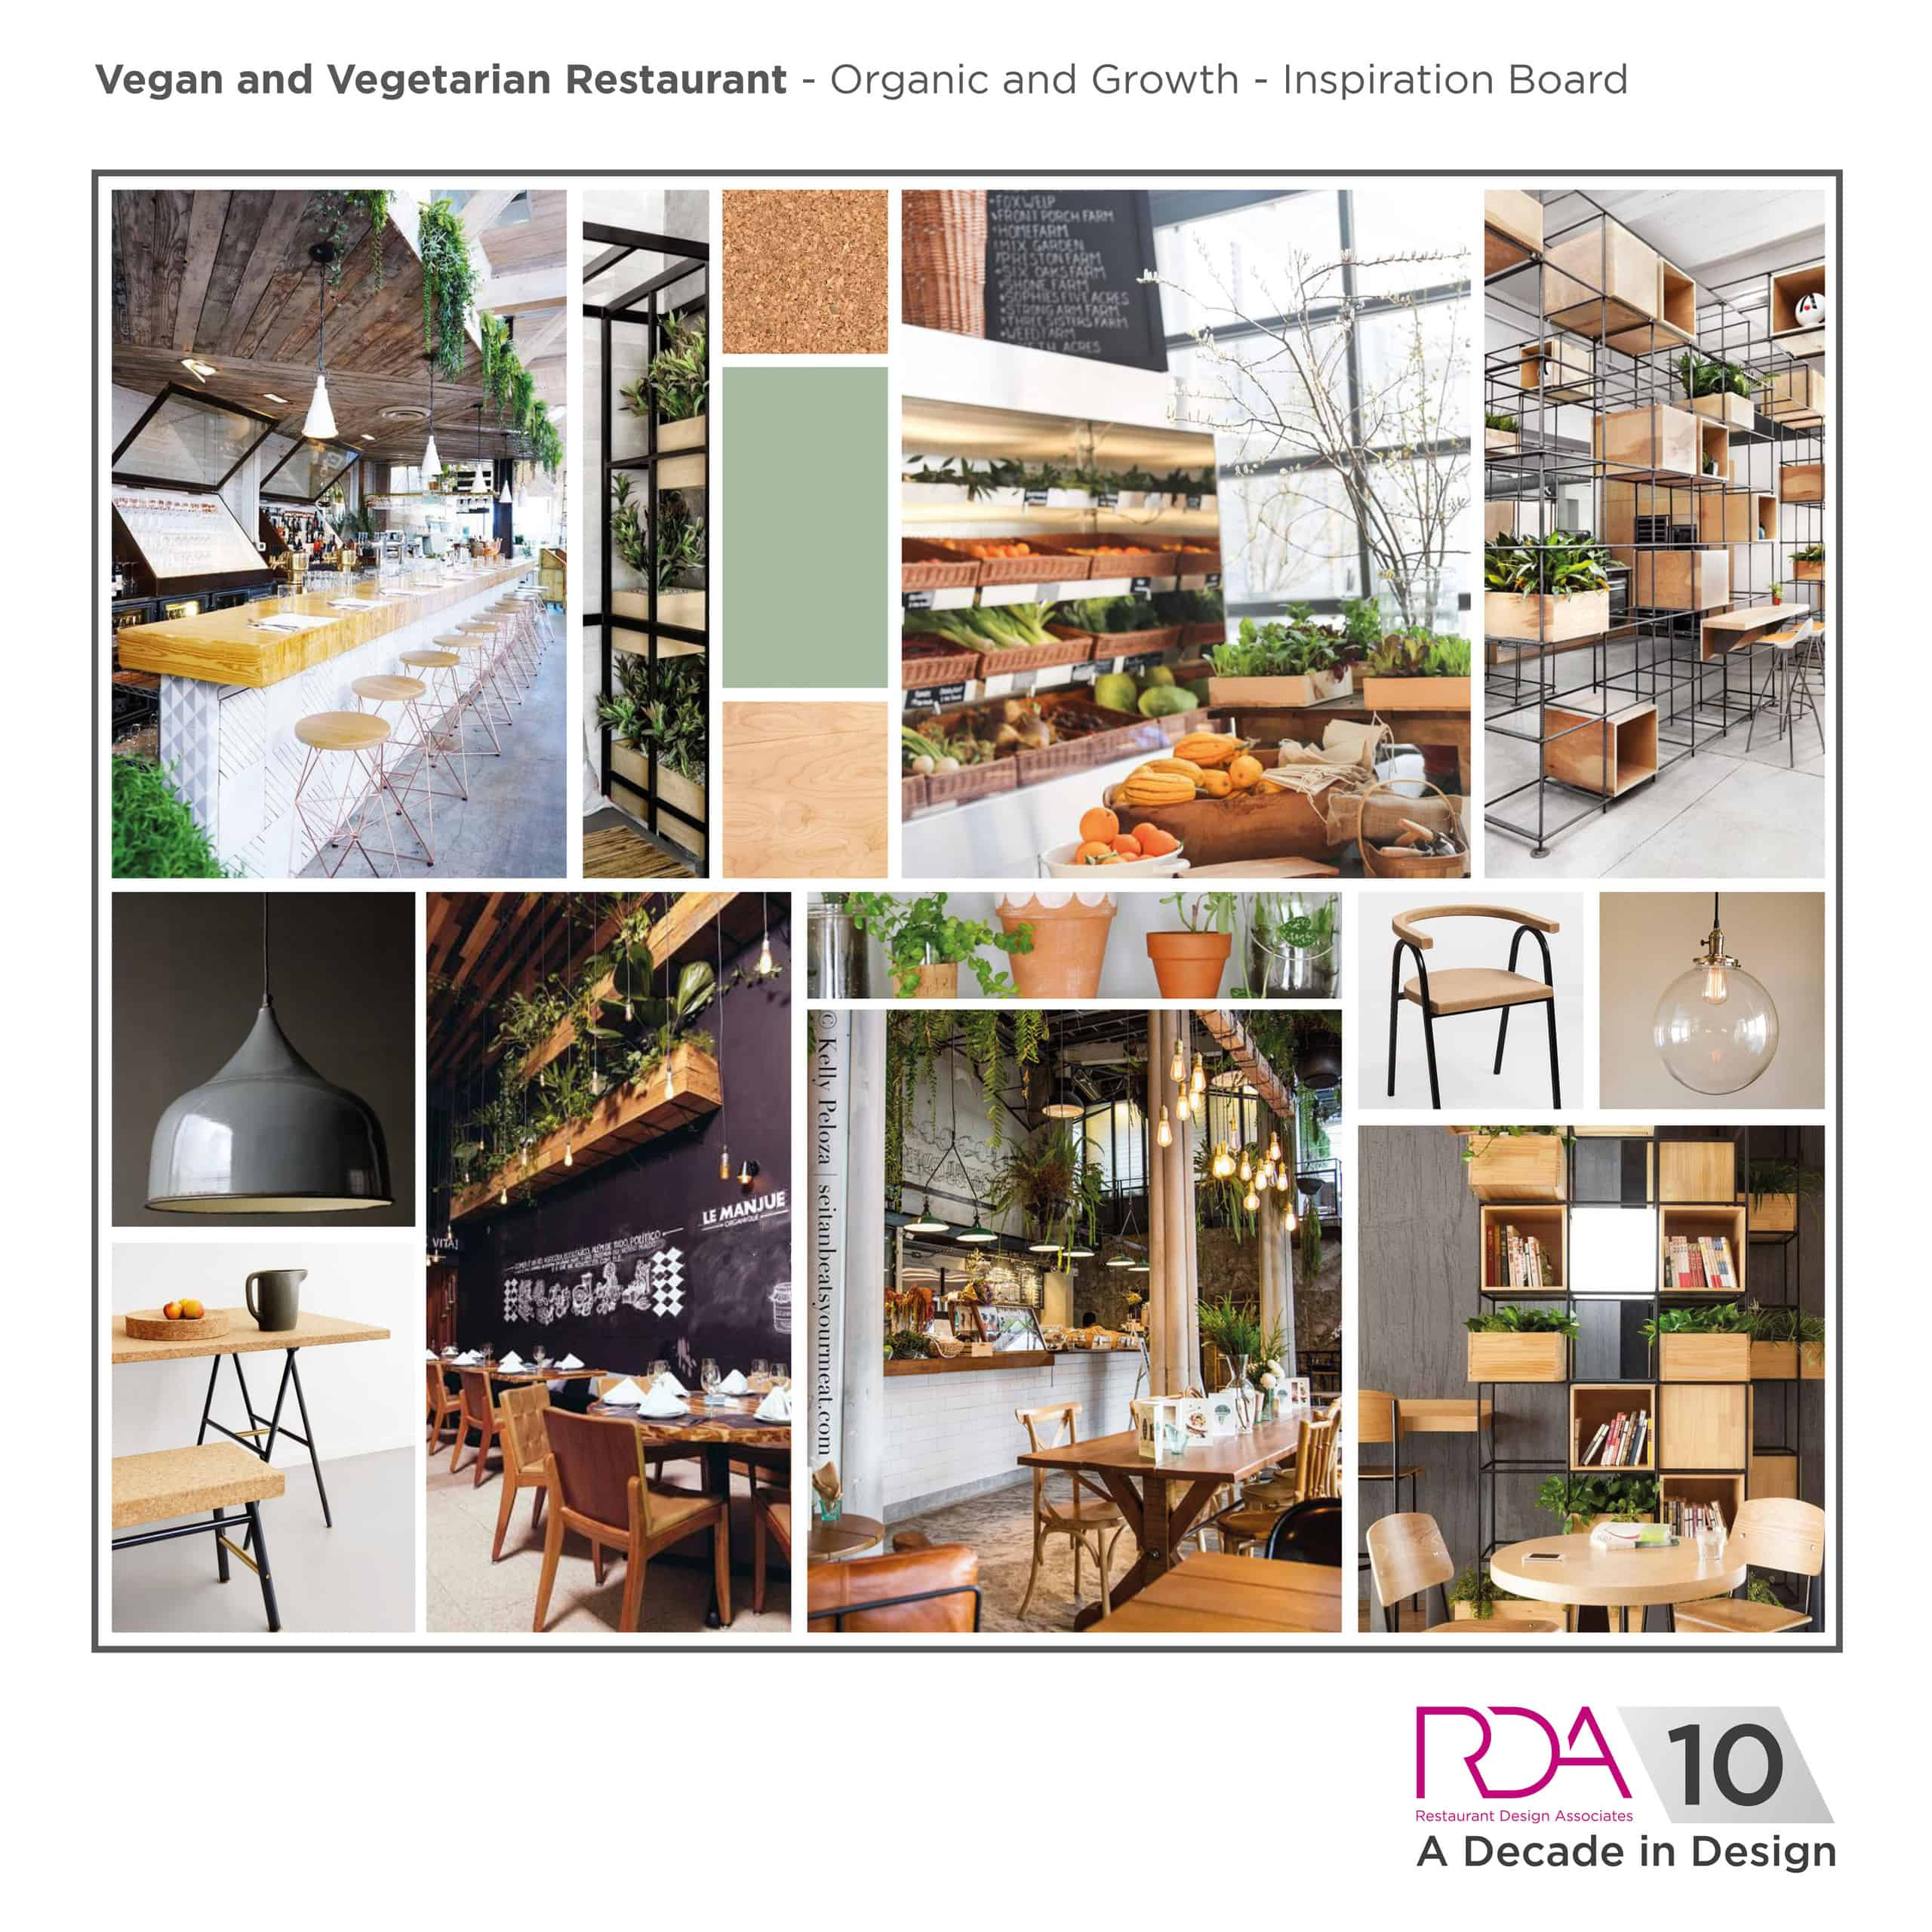 Vegetarian and Vegan Restaurant Design | RDA